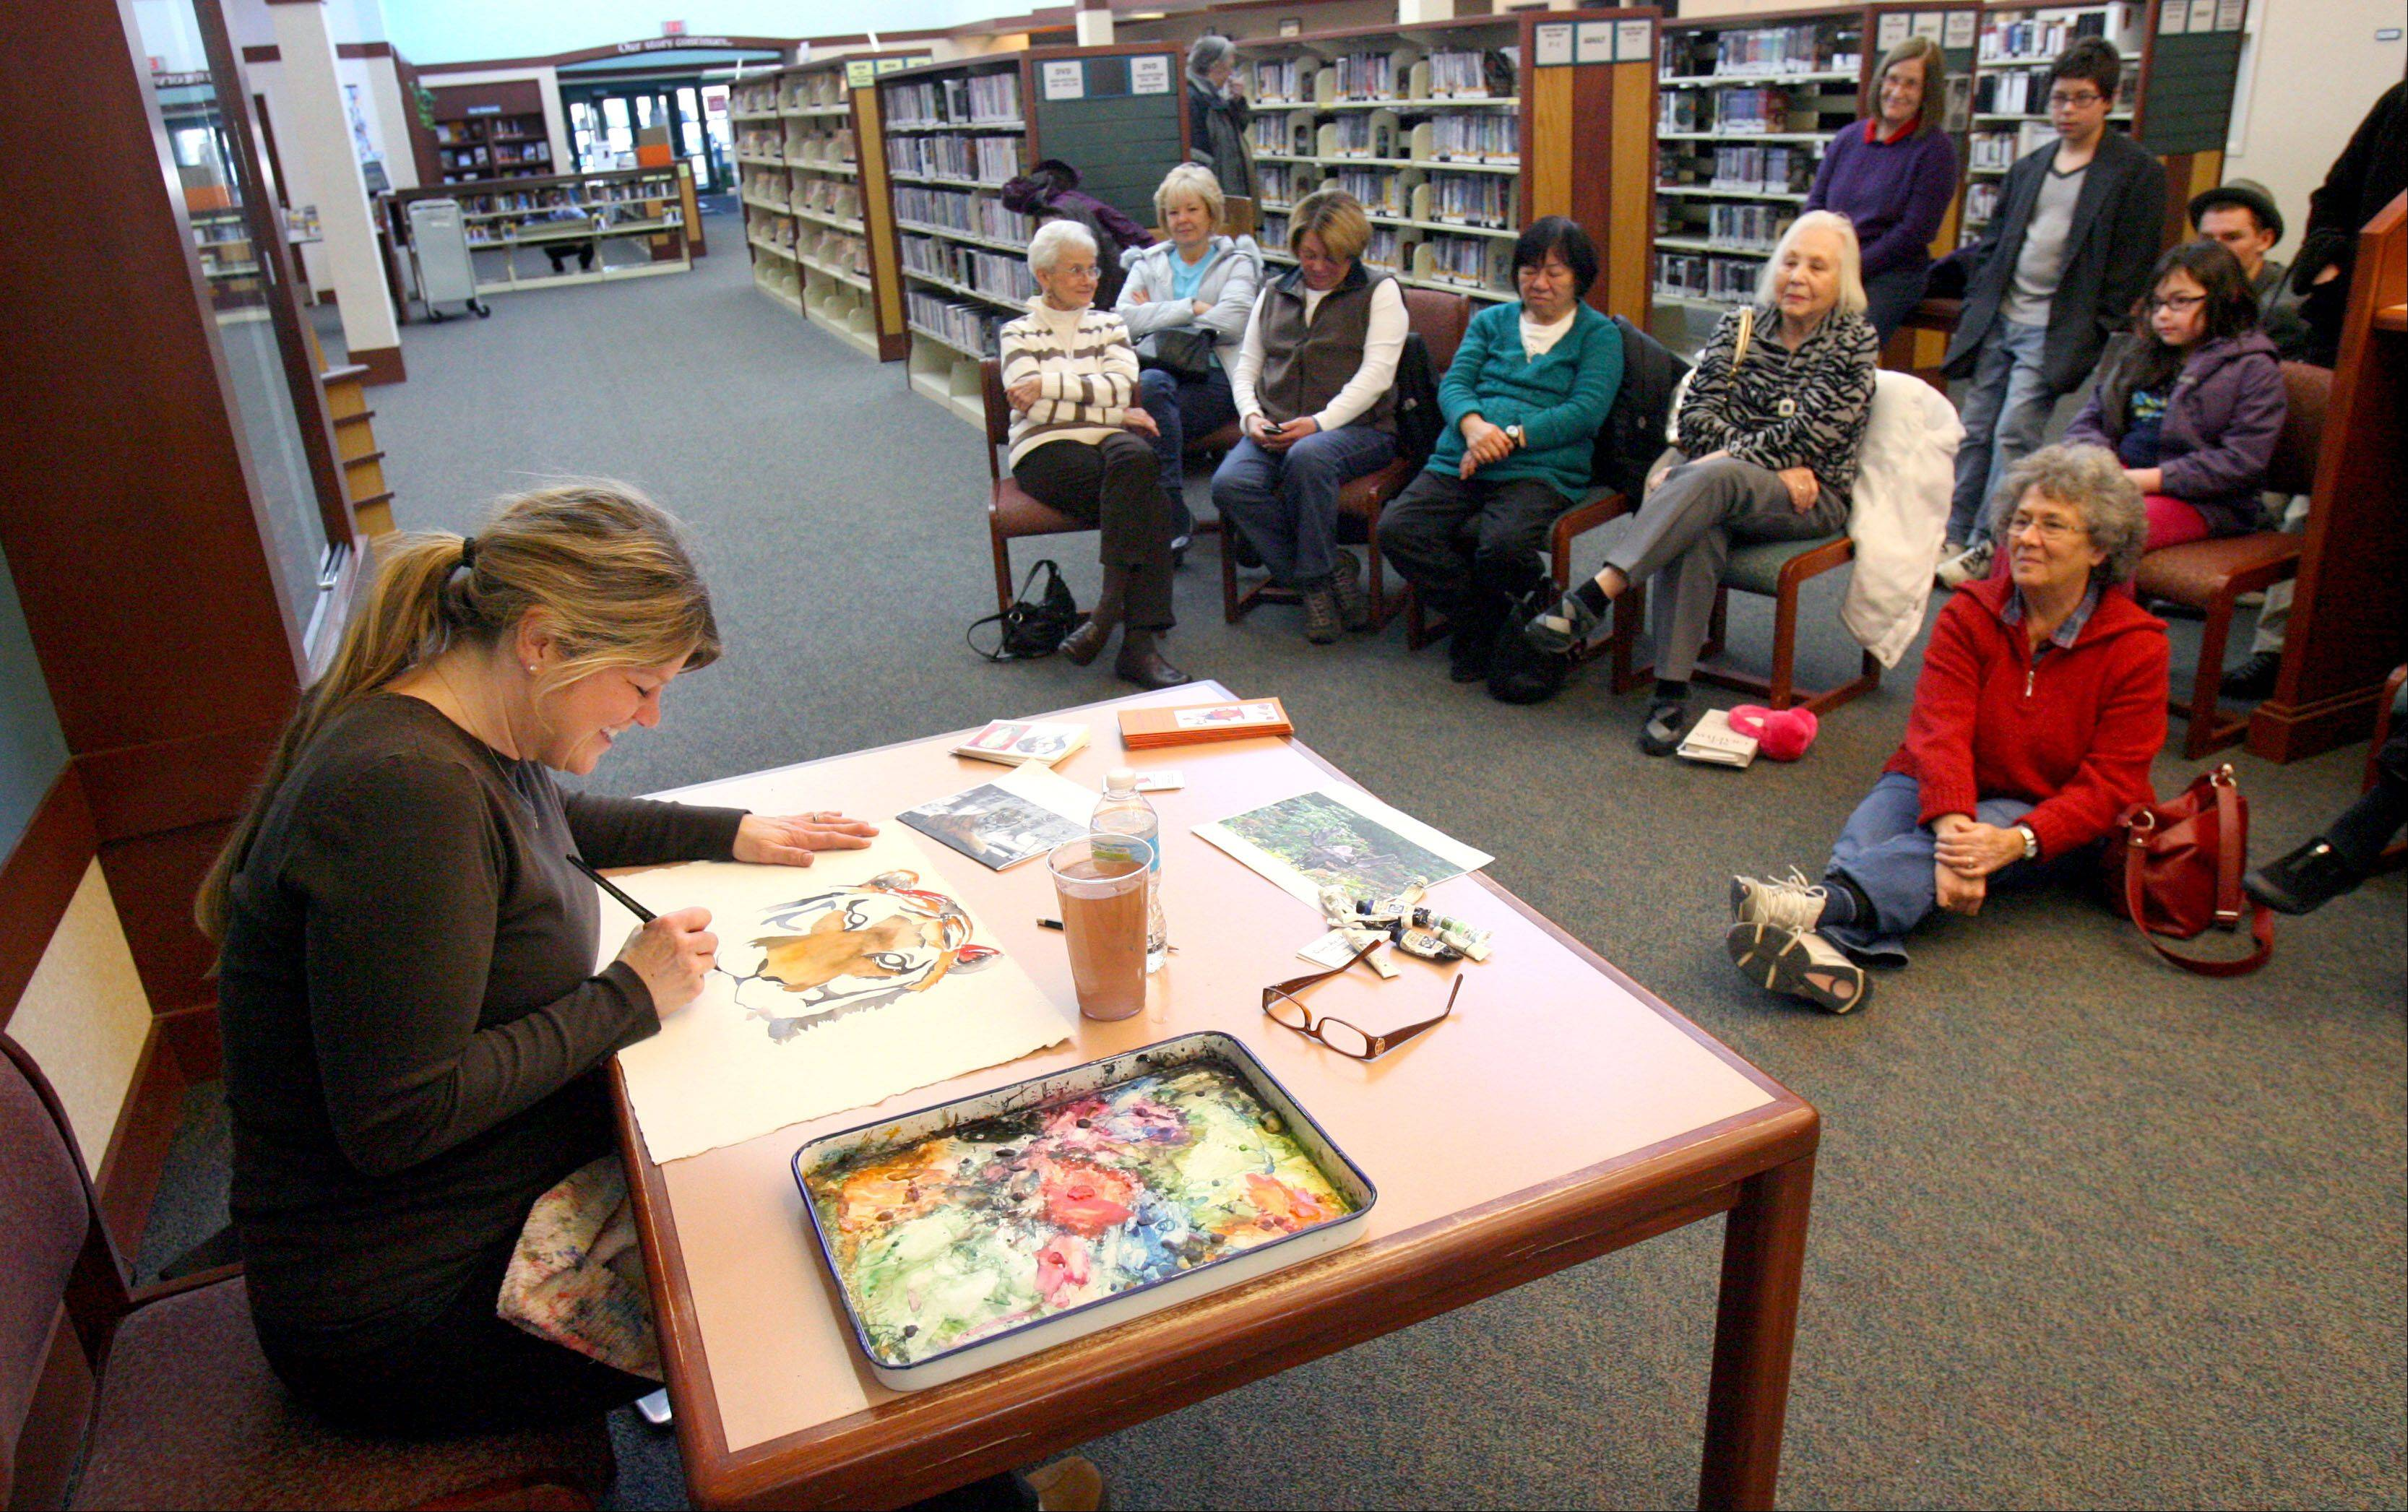 Water color artist Julie Adriansen of Lake Villa drew a small crowd as she shared her painting skills during Lake Villa District Library's Artist in Residence program Monday.